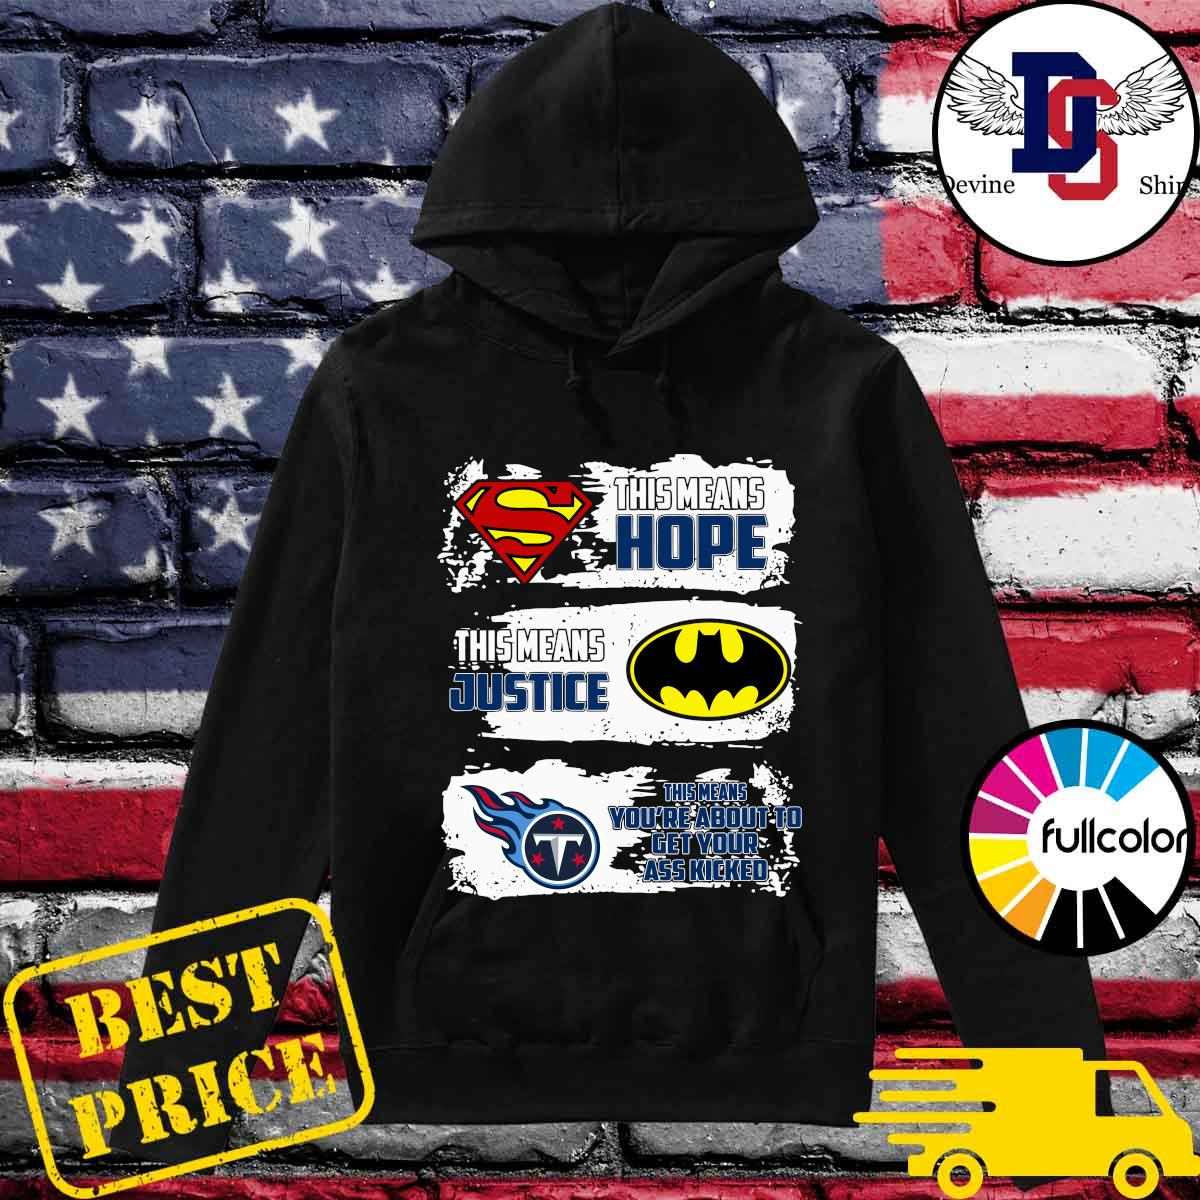 Superman This Means Hope, Batman This Means Justice, Tennessee Titans This Means You_re About To Get Your Ass Kicked Shirt Hoodie